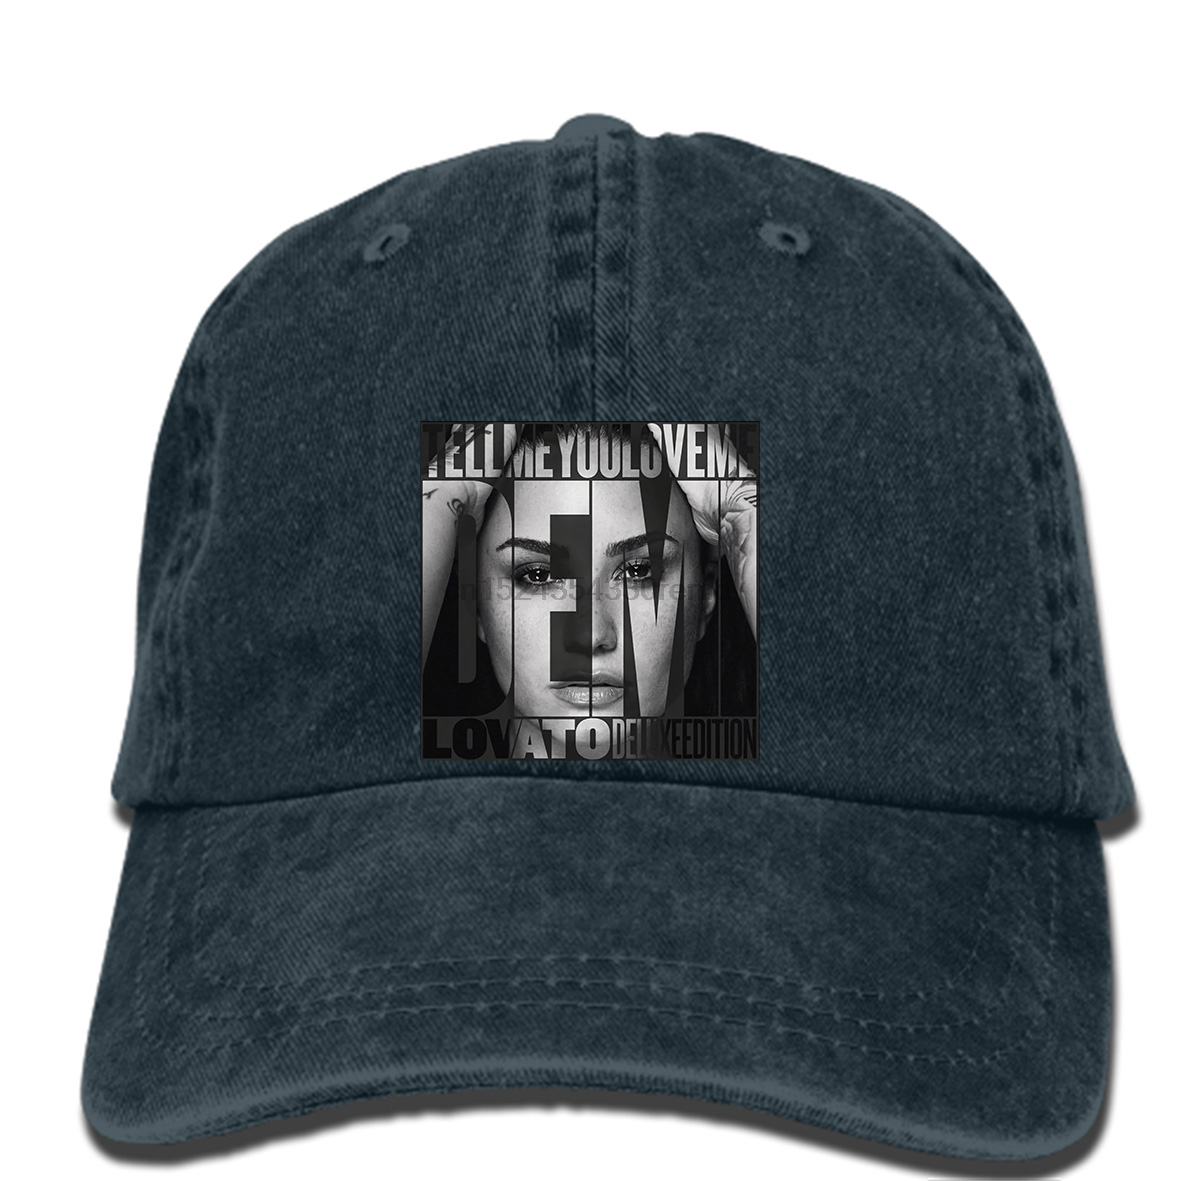 ee63769c5a39a hip hop Baseball caps Printed Men hat Class Car Demi Lovato Tell Me You  Love Me Mens cap Women t-in Baseball Caps from Apparel Accessories on  Aliexpress.com ...